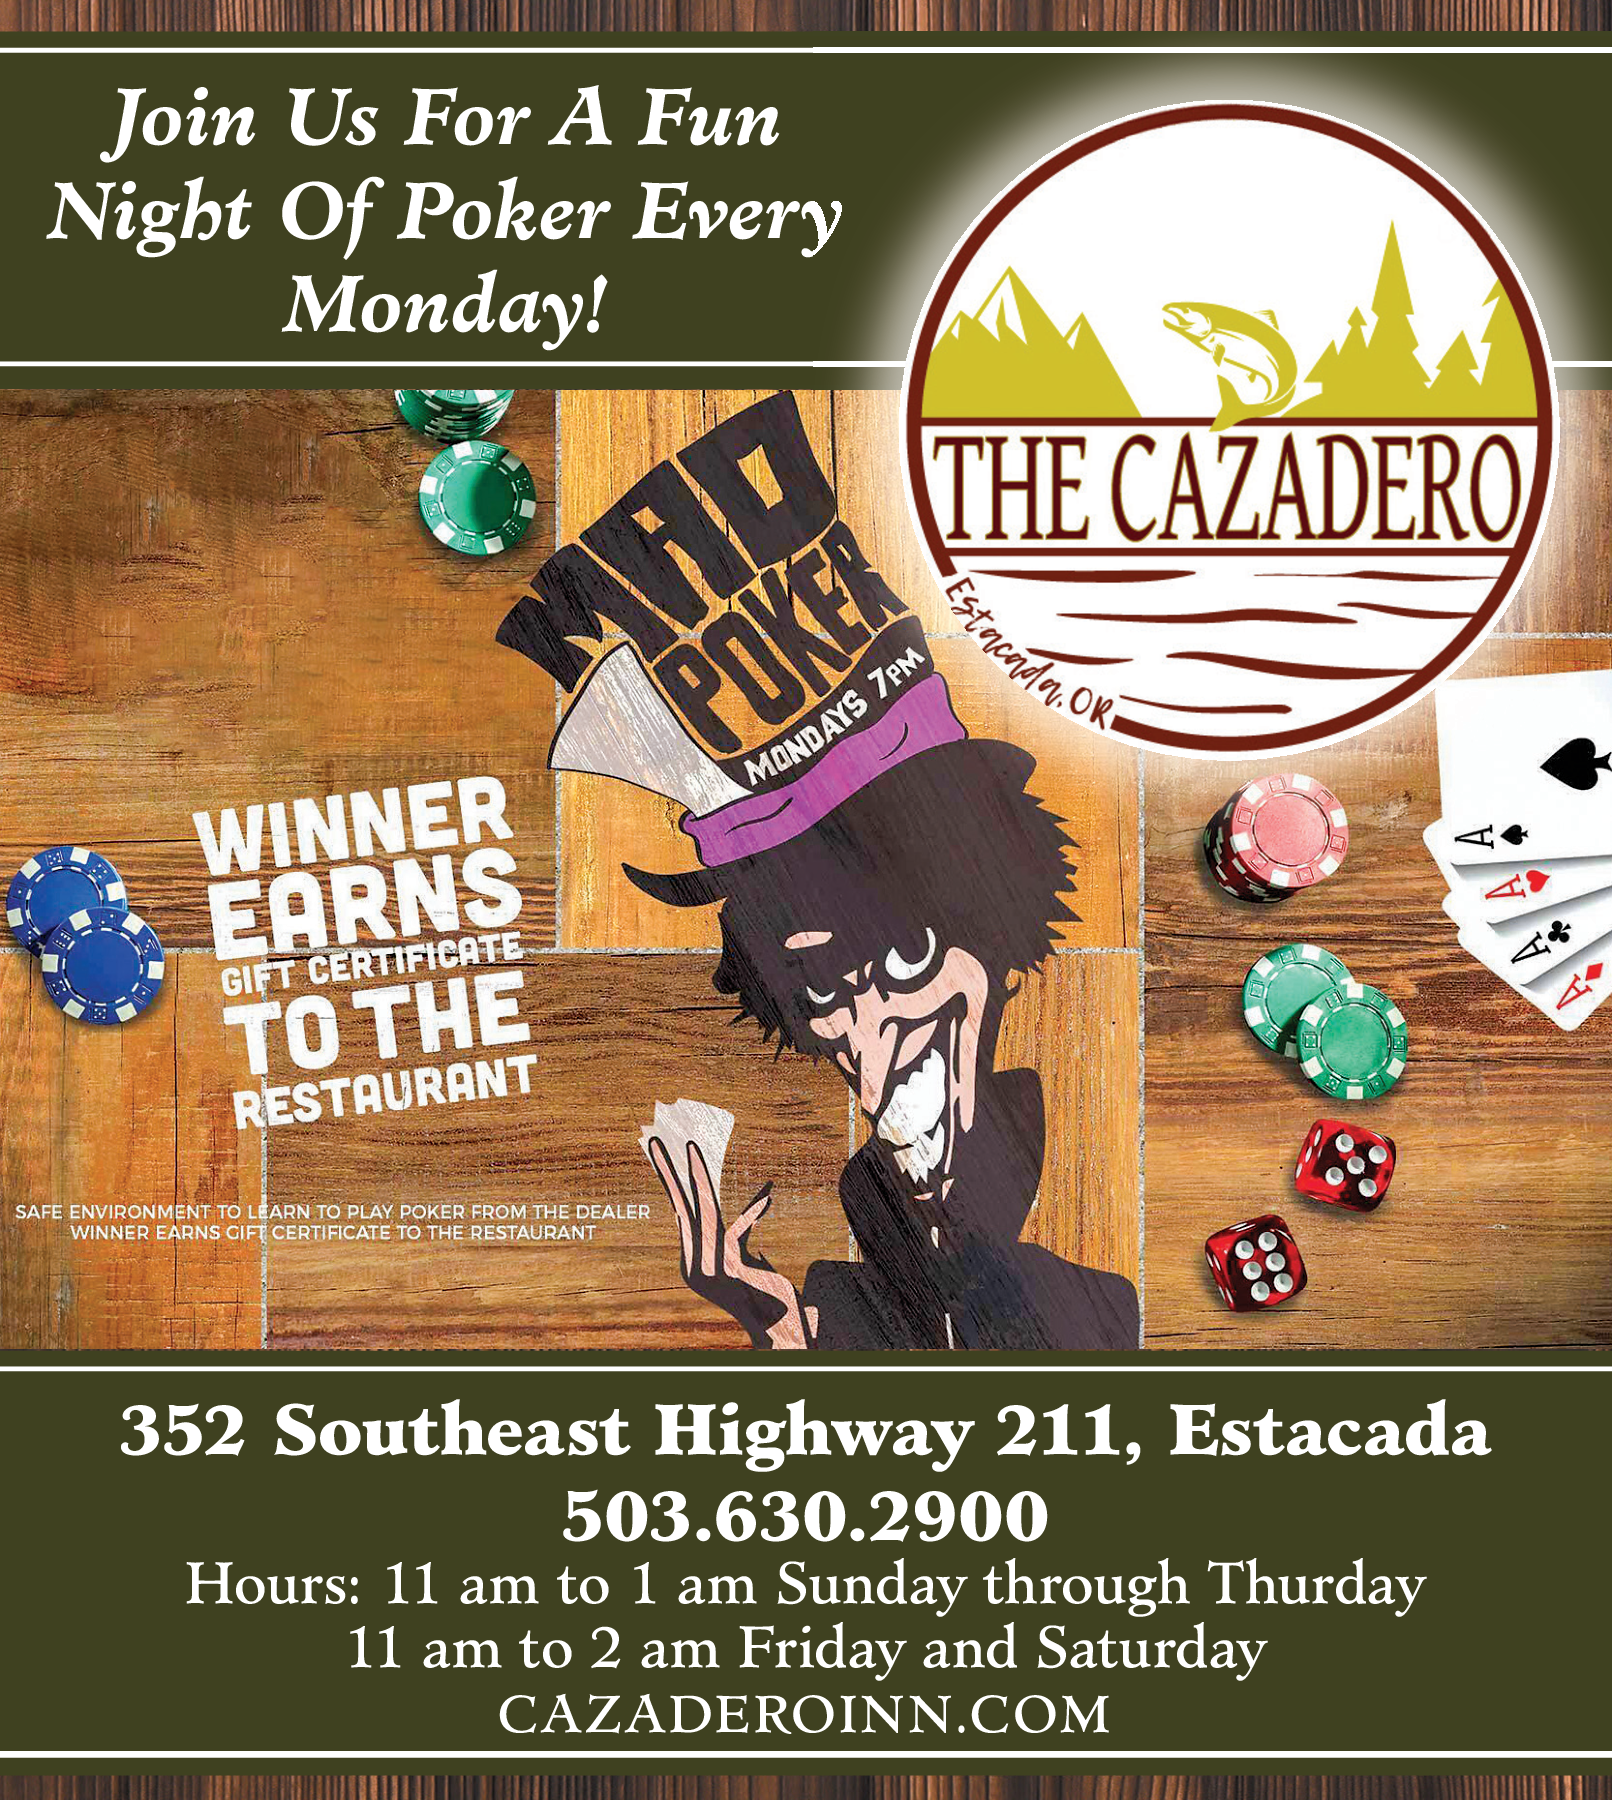 Join Us For A Fun Night Of Every Monday In Estacada Or Restaurants Cazadero Inn